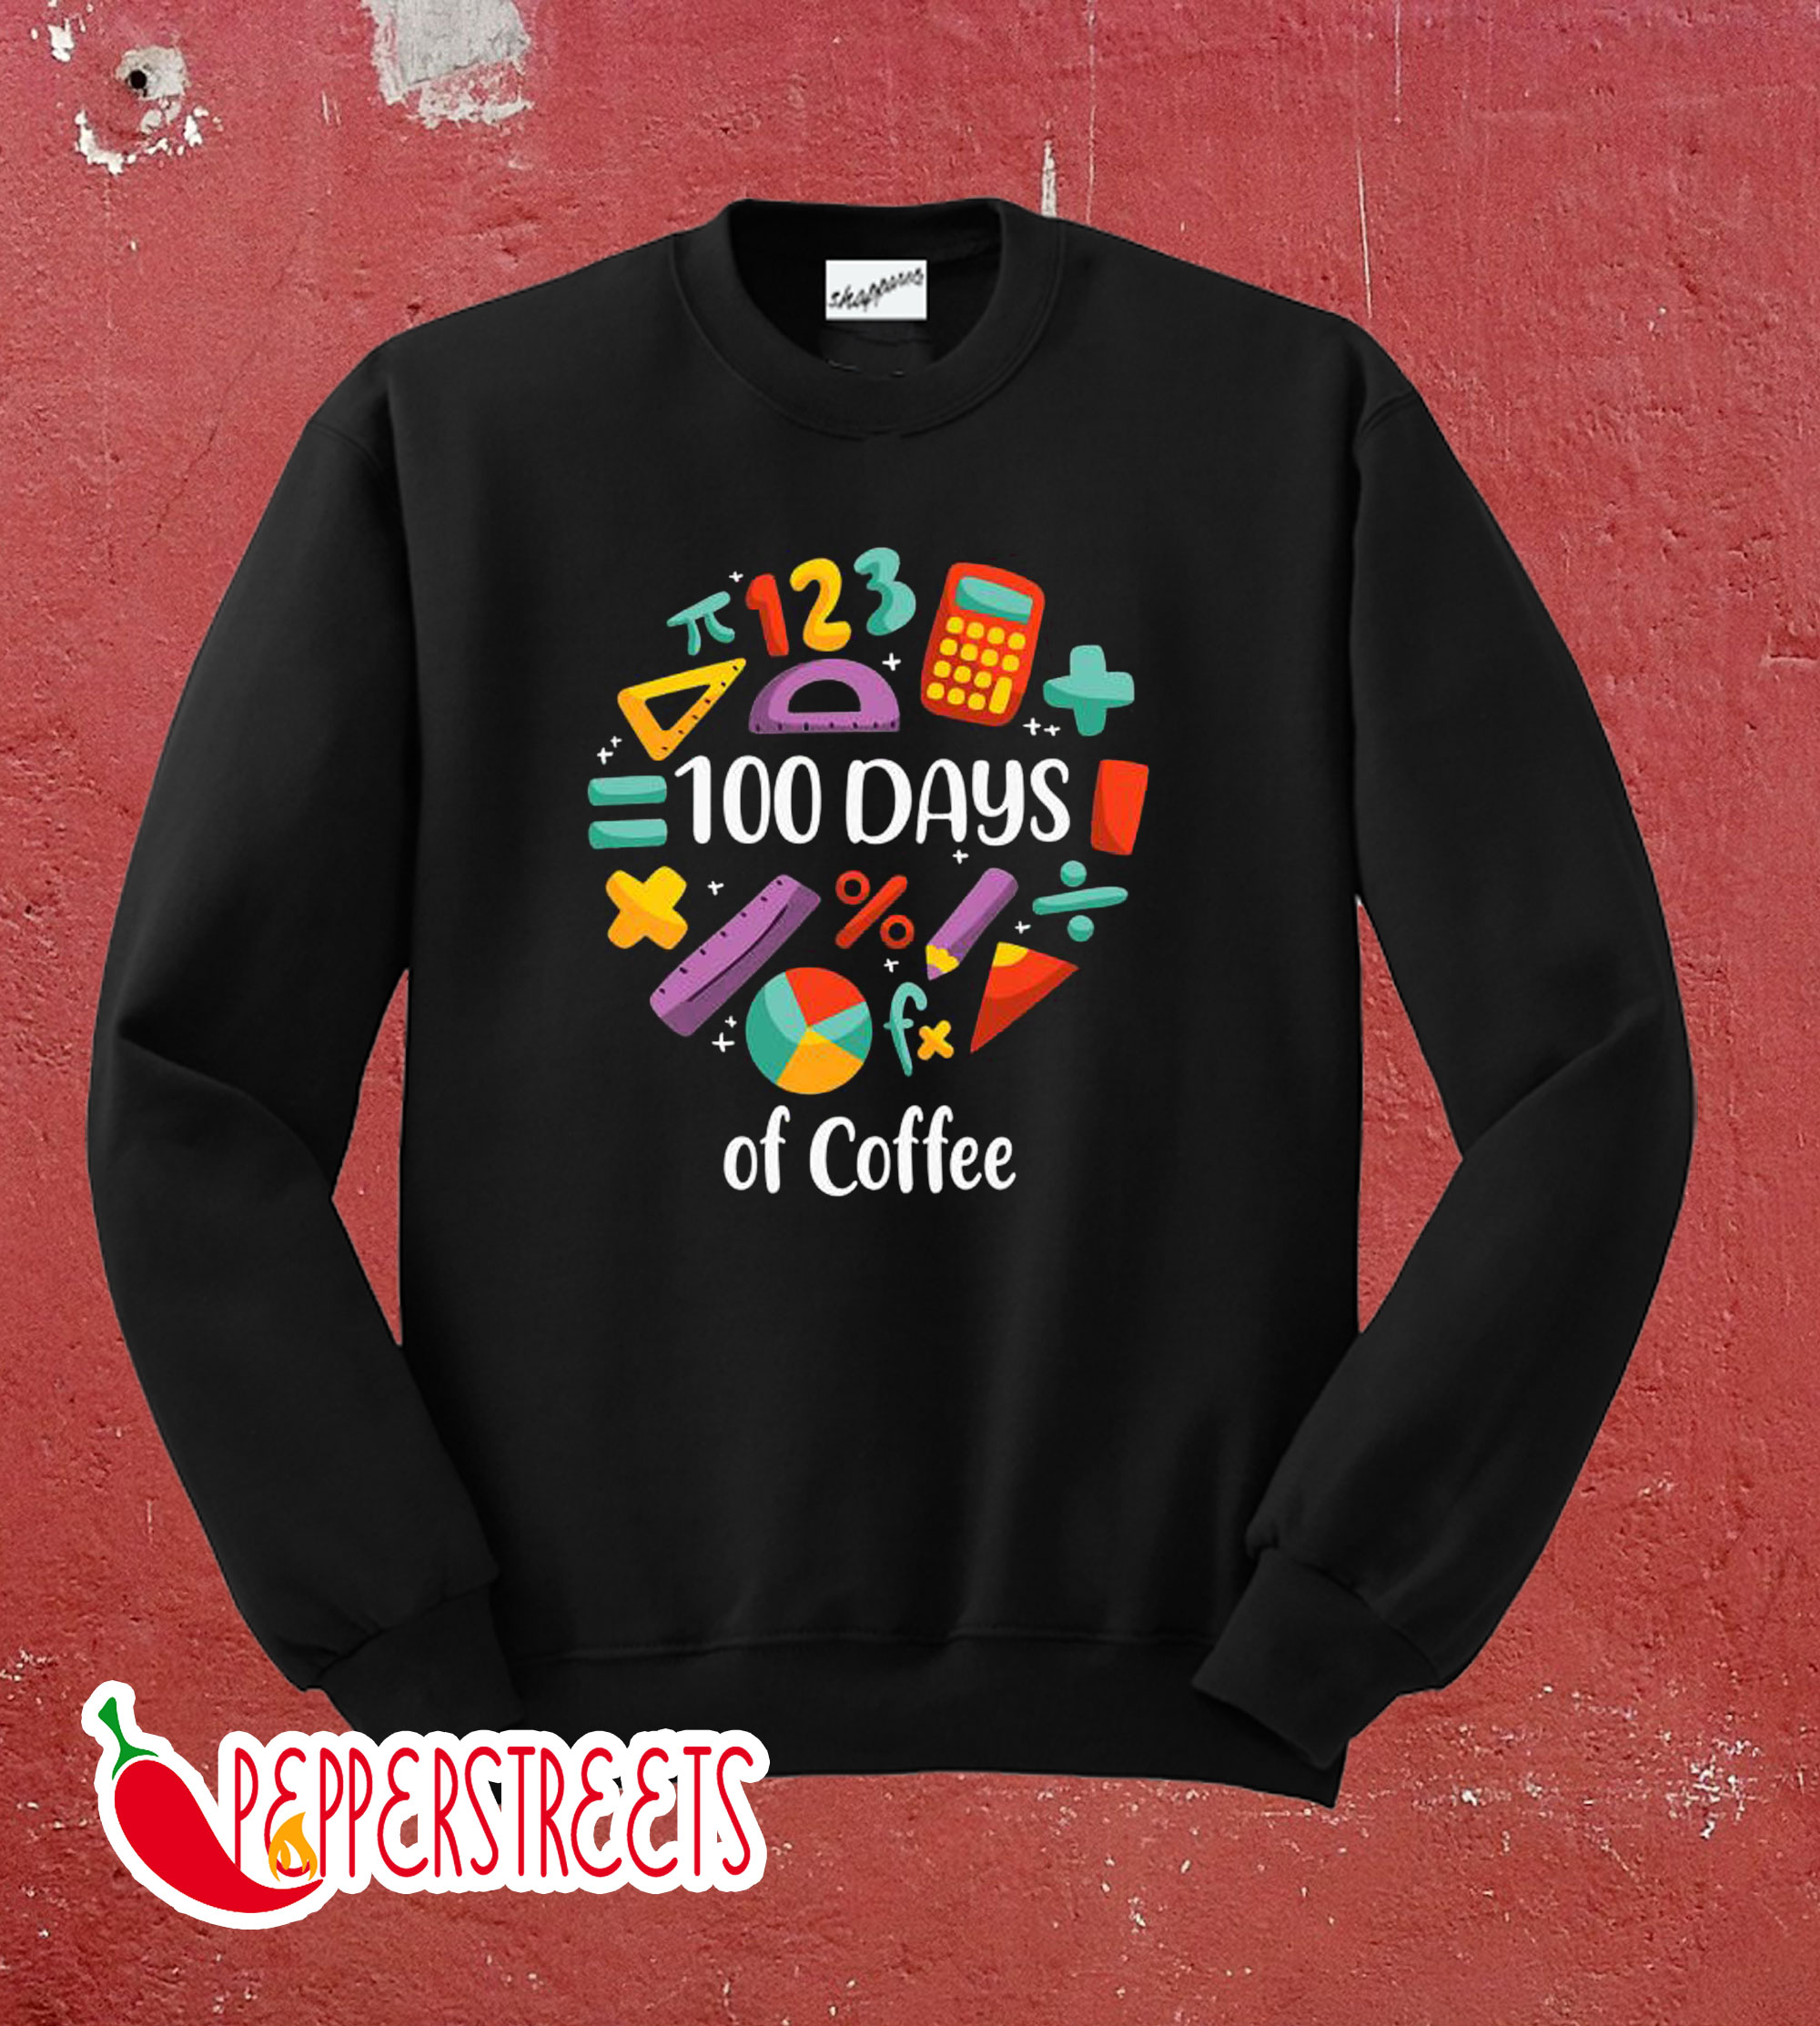 100 Days Of Coffee T-Shirt